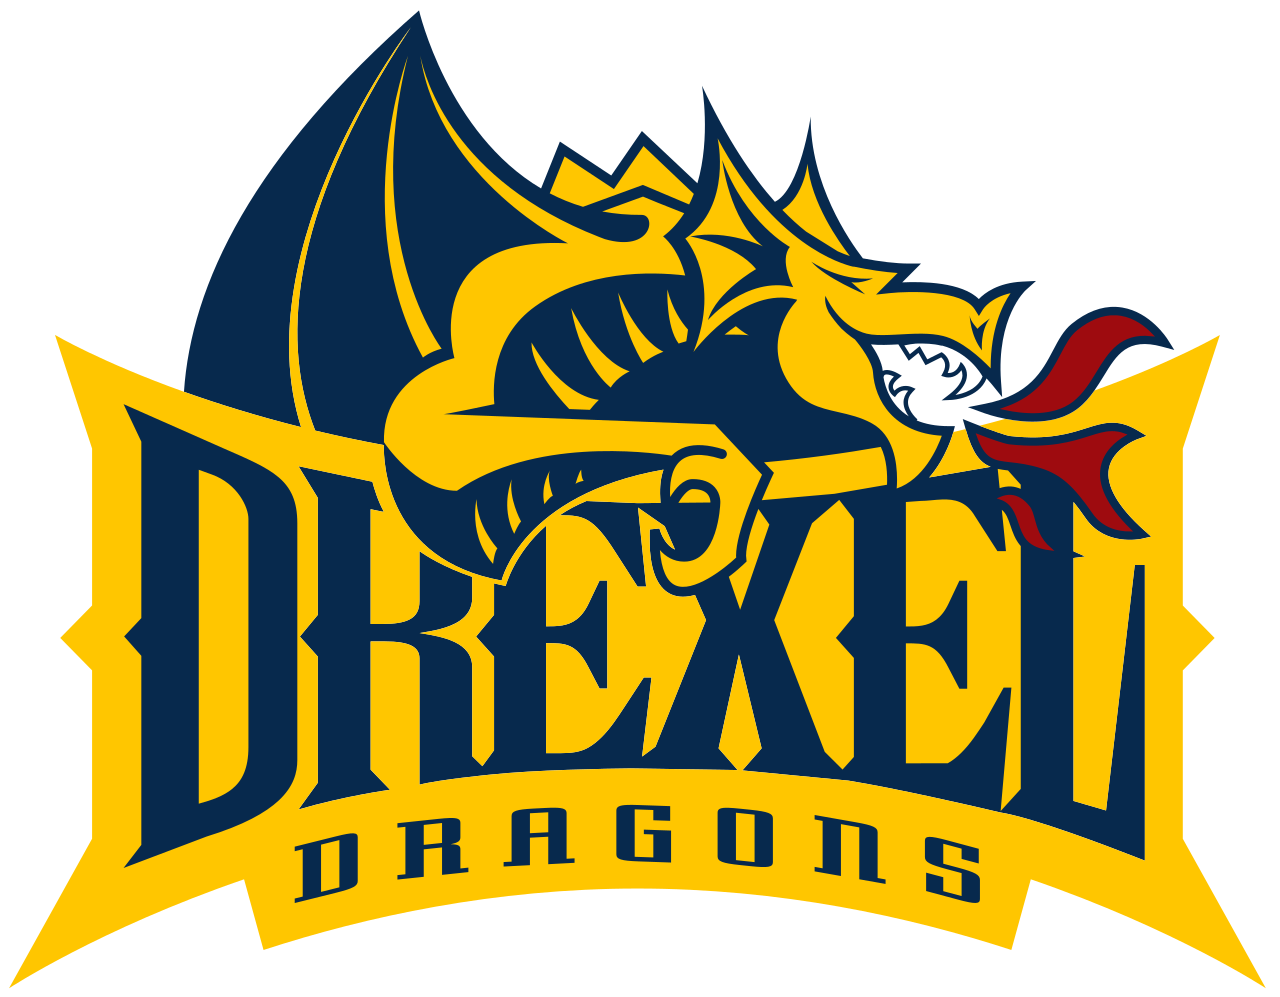 Drexel Dragons Gold's logo